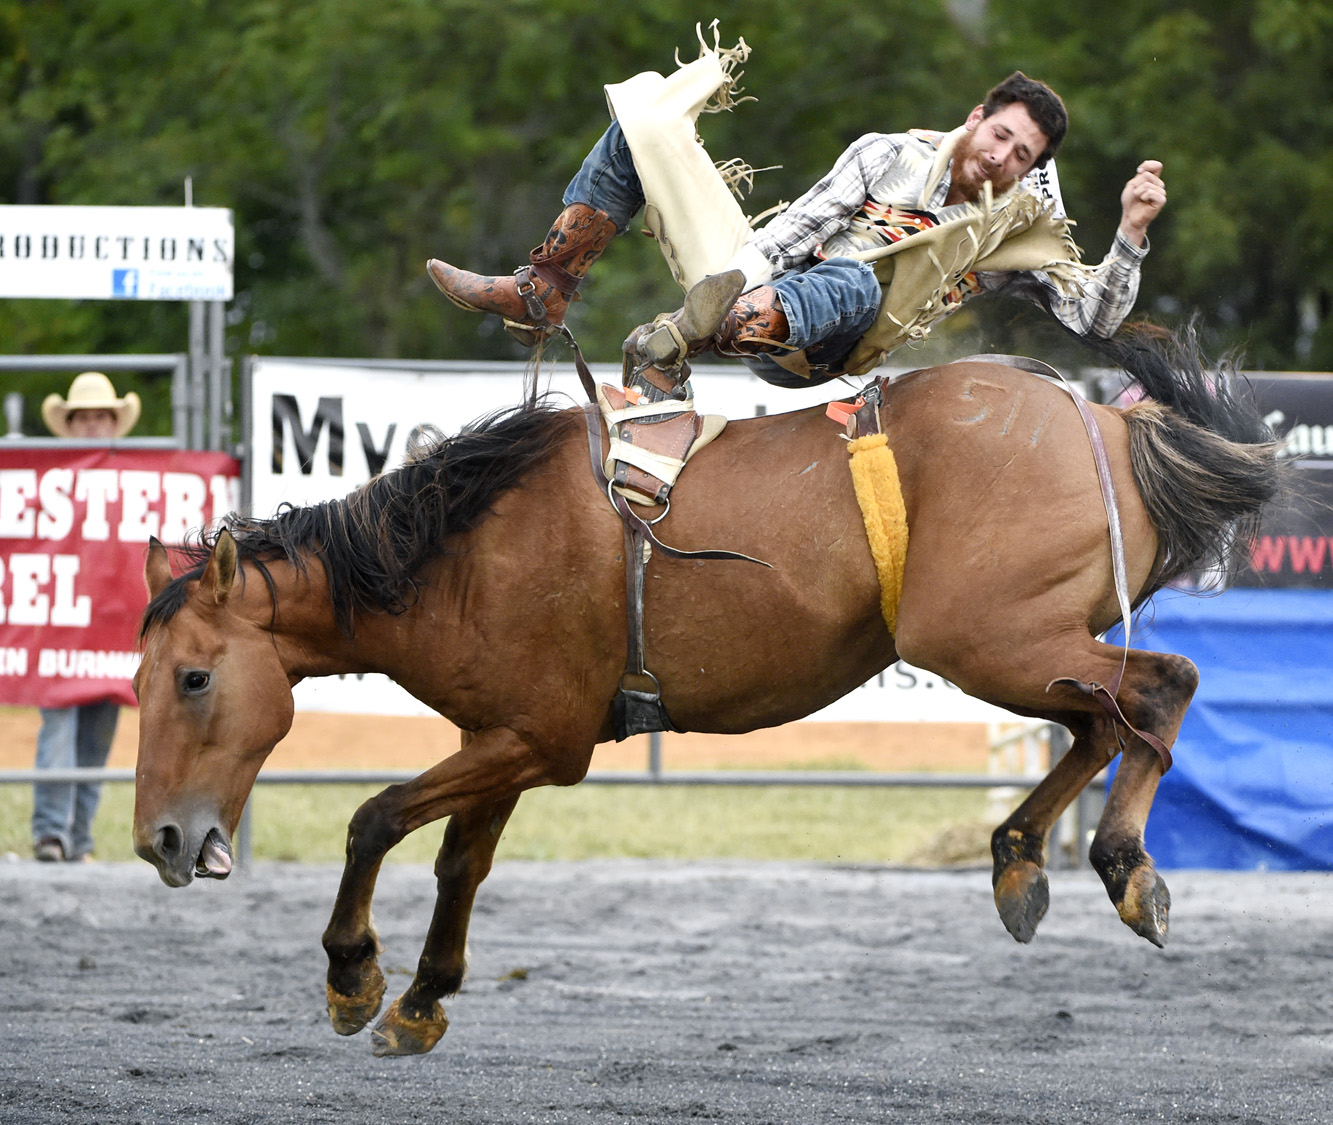 The Howard County Fair's All-American Pro Rodeo